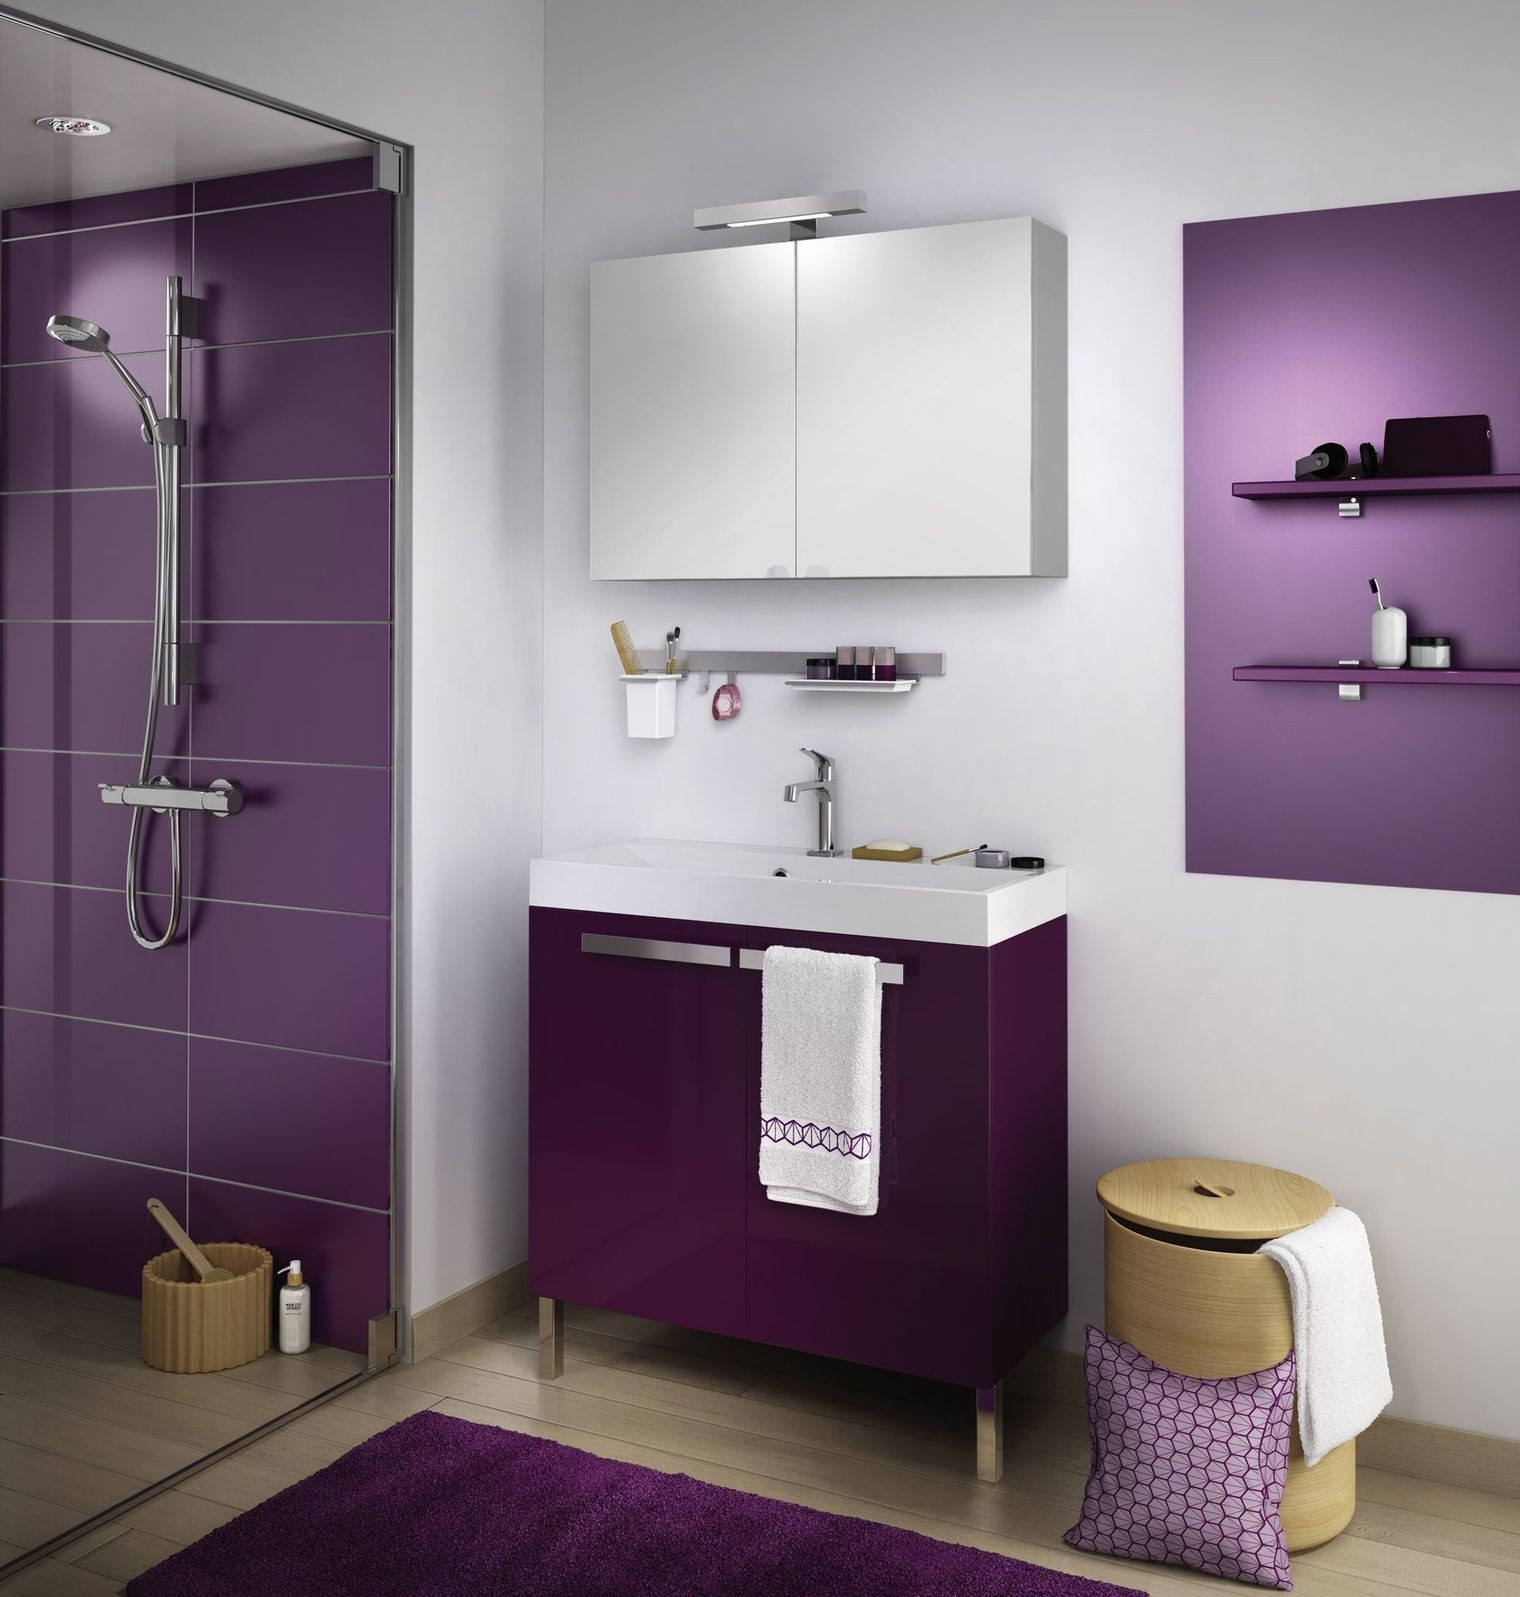 Salle de bain de 4m2 cheap gallery of comment amnager une for Modele salle de bain 4m2